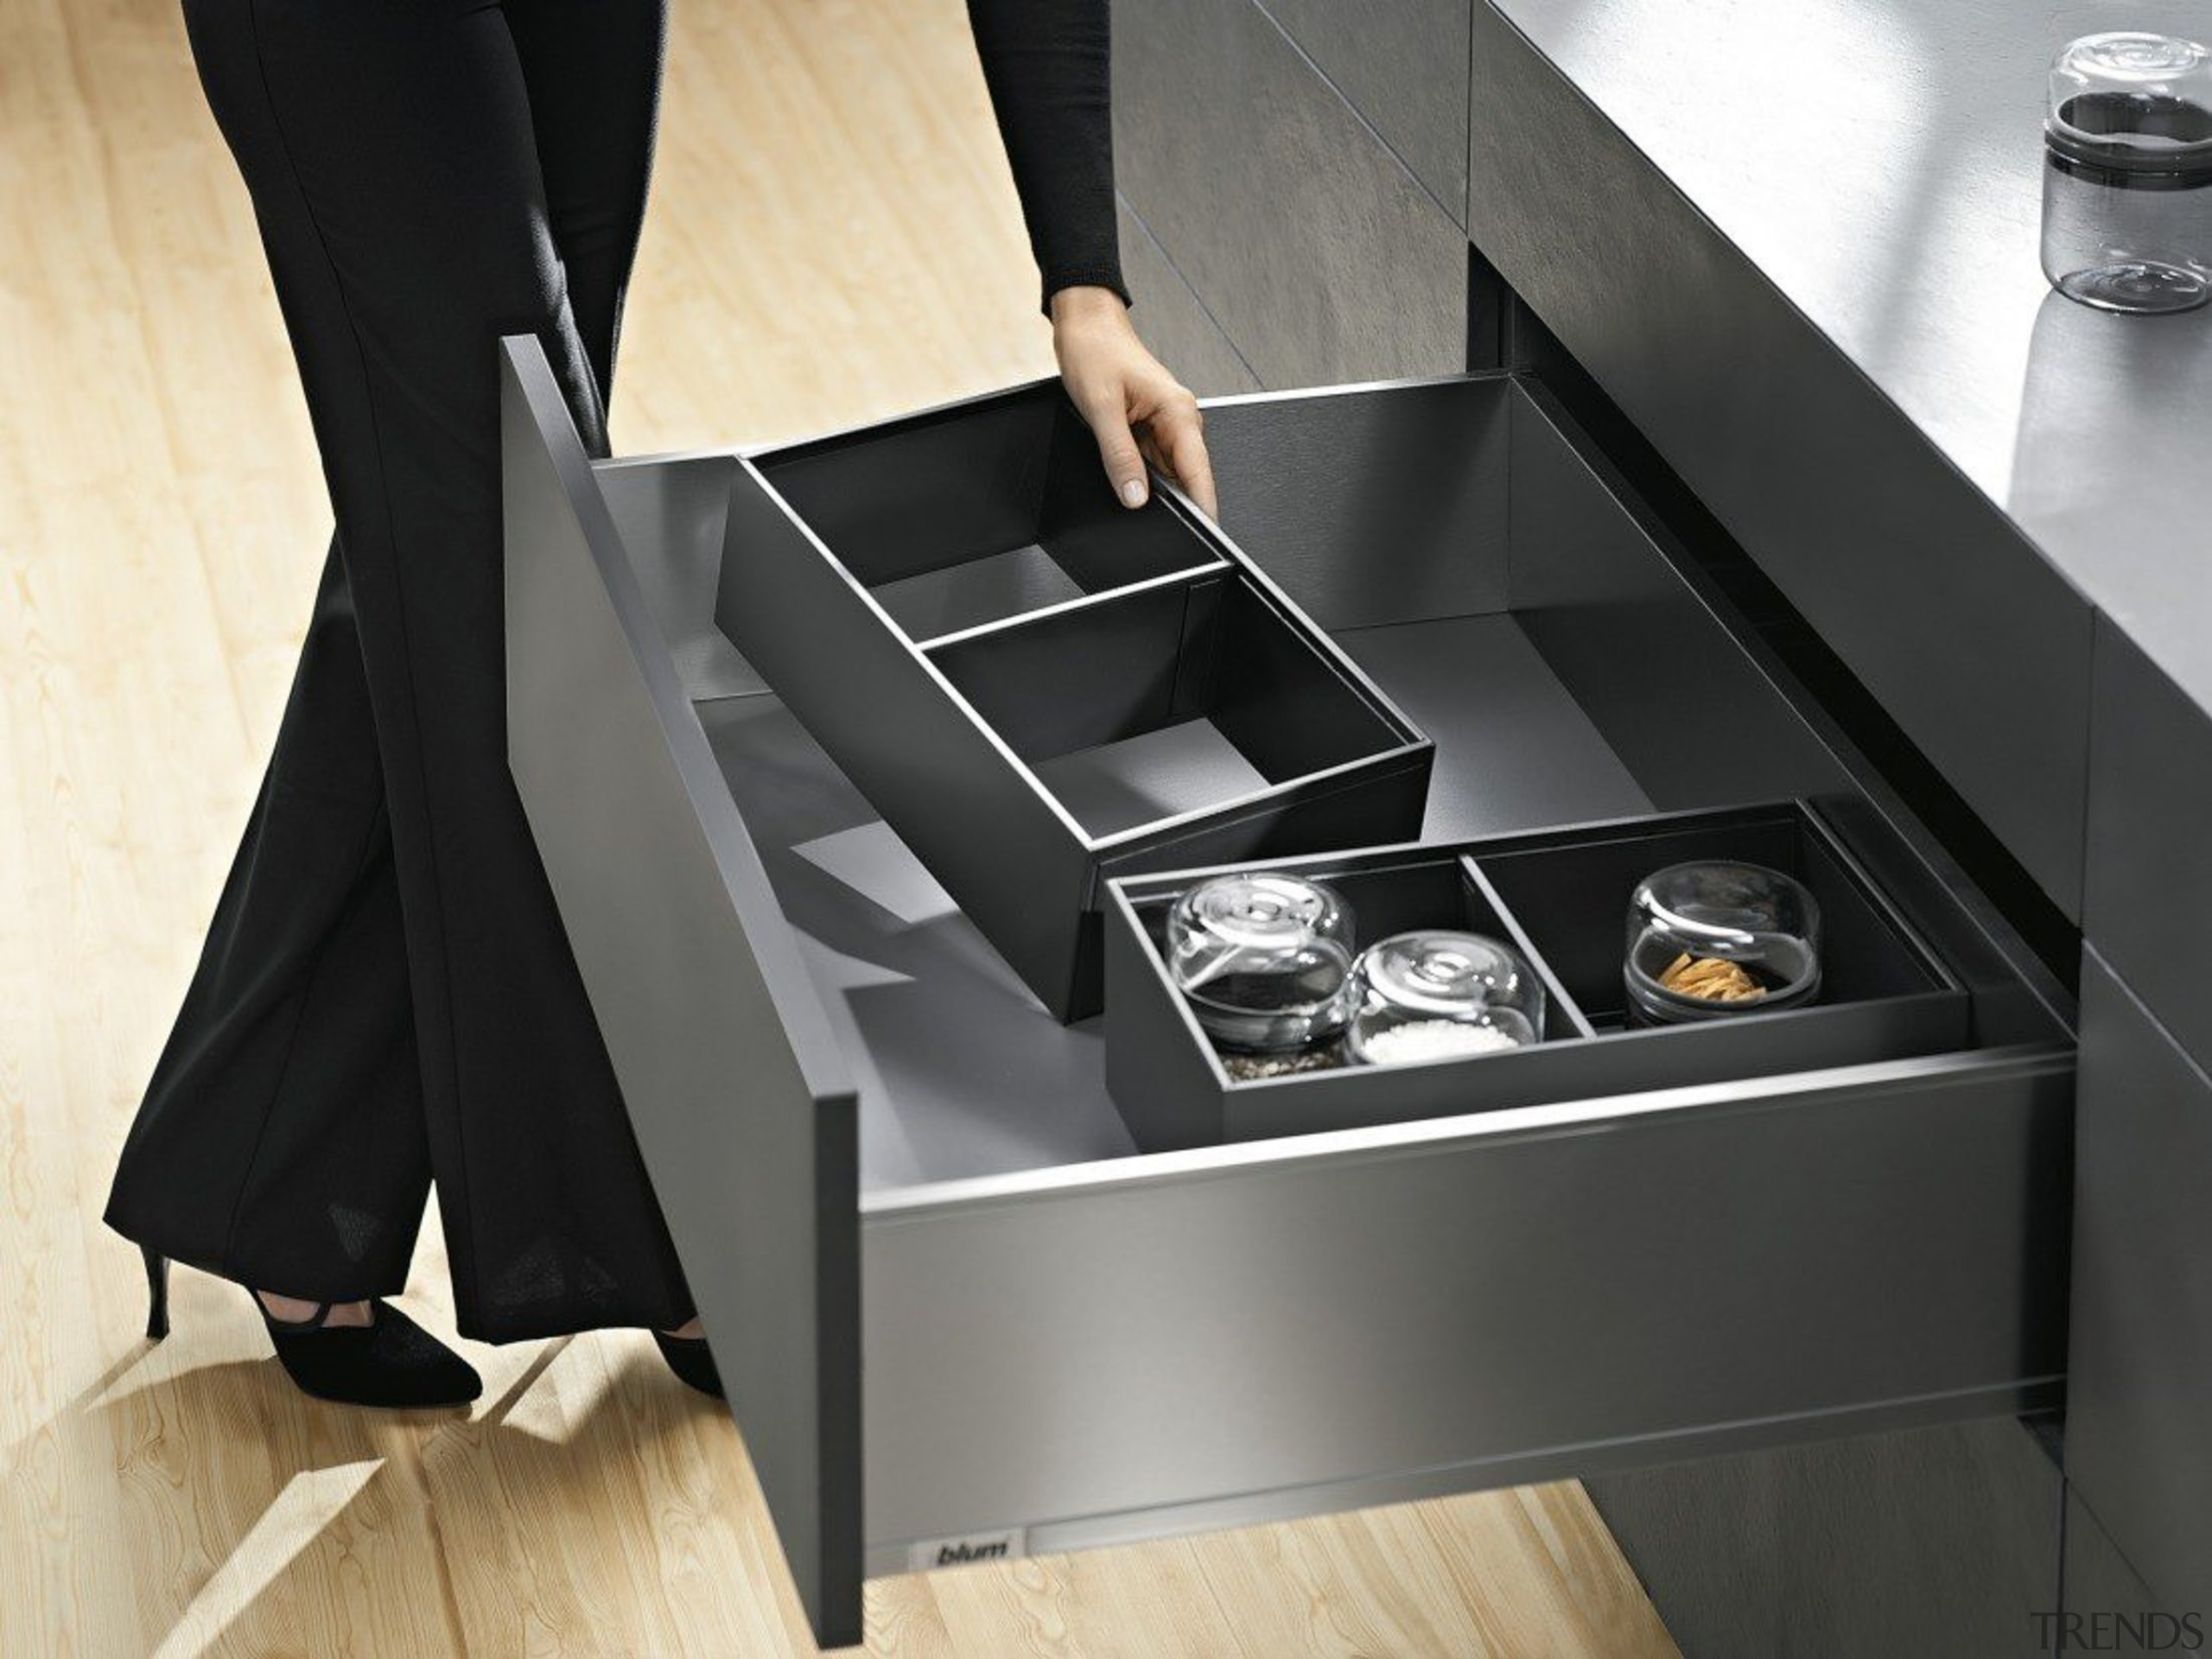 AMBIA-LINE inner dividing system – organization at its angle, desk, floor, furniture, product, product design, table, black